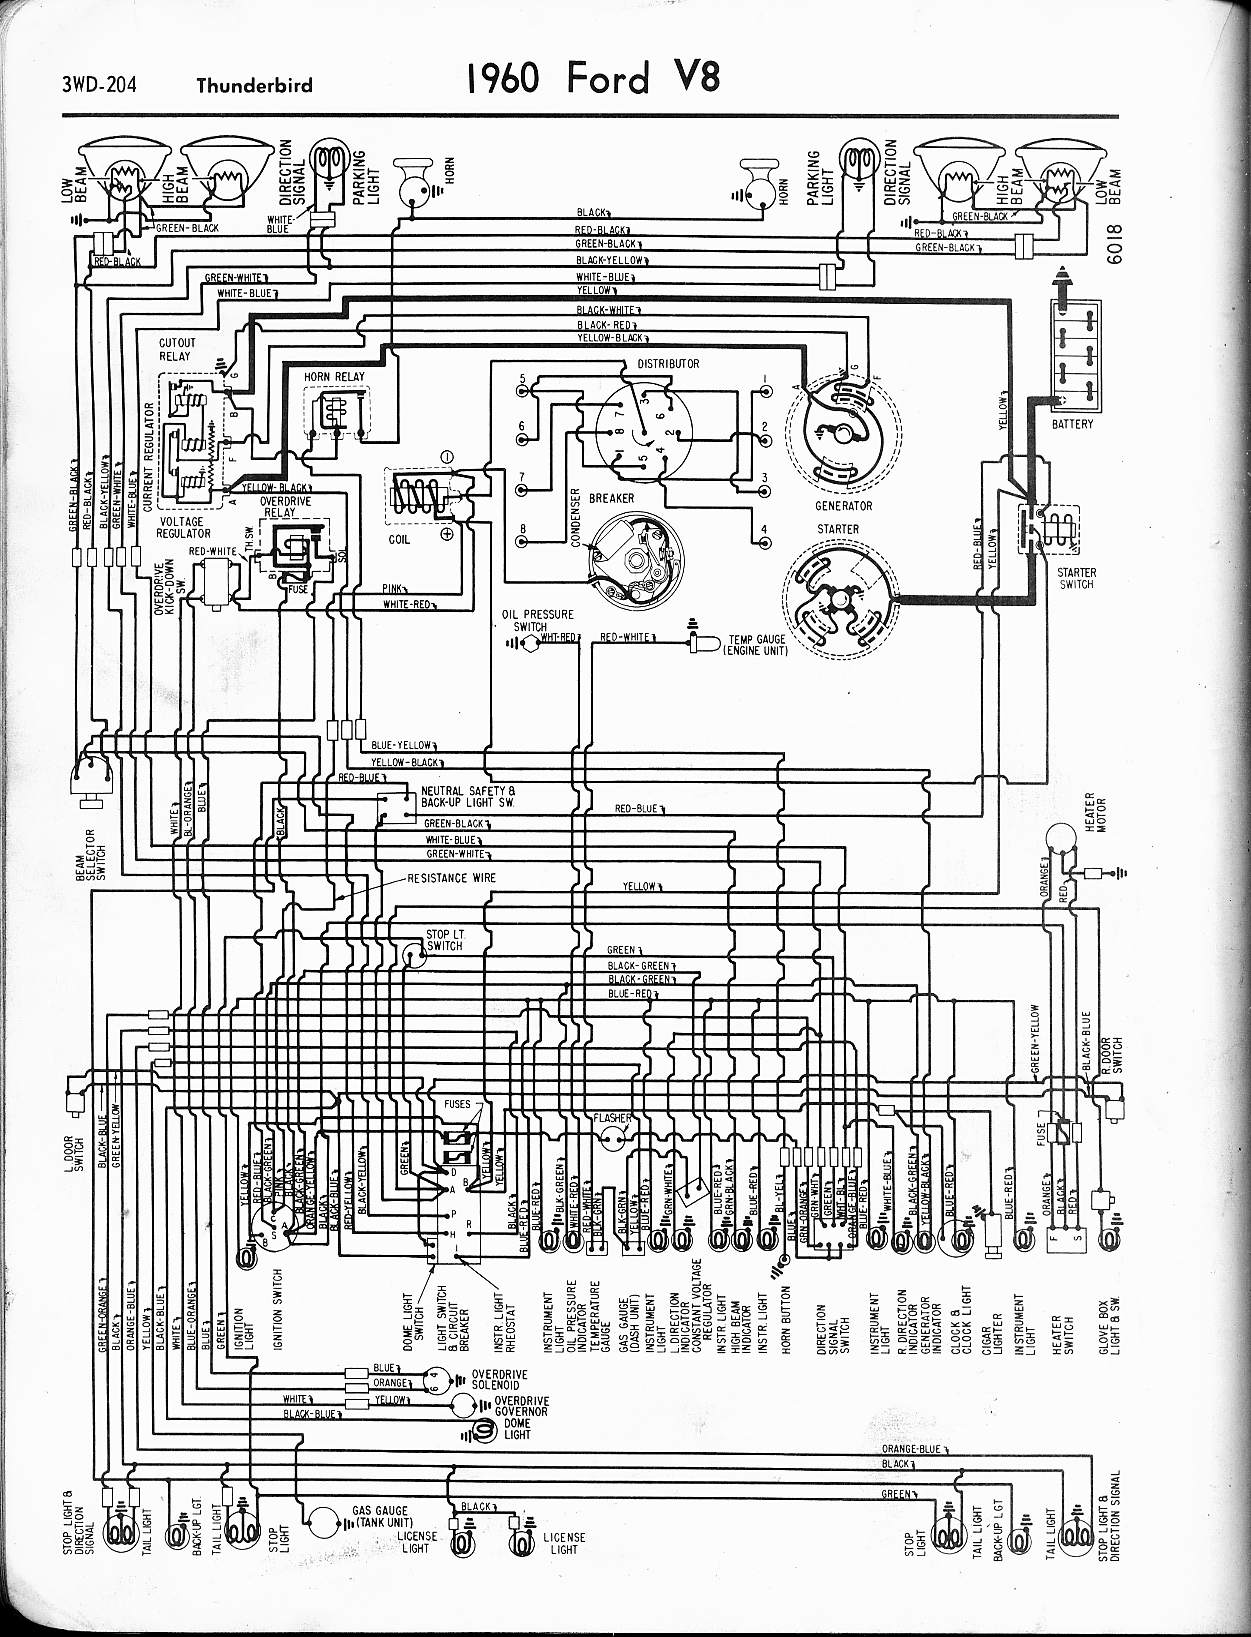 MWire5765 204 1964 1966 thunderbirfd wiring schematic 66 mustang wiring diagram Ford Truck Wiring Diagrams at crackthecode.co